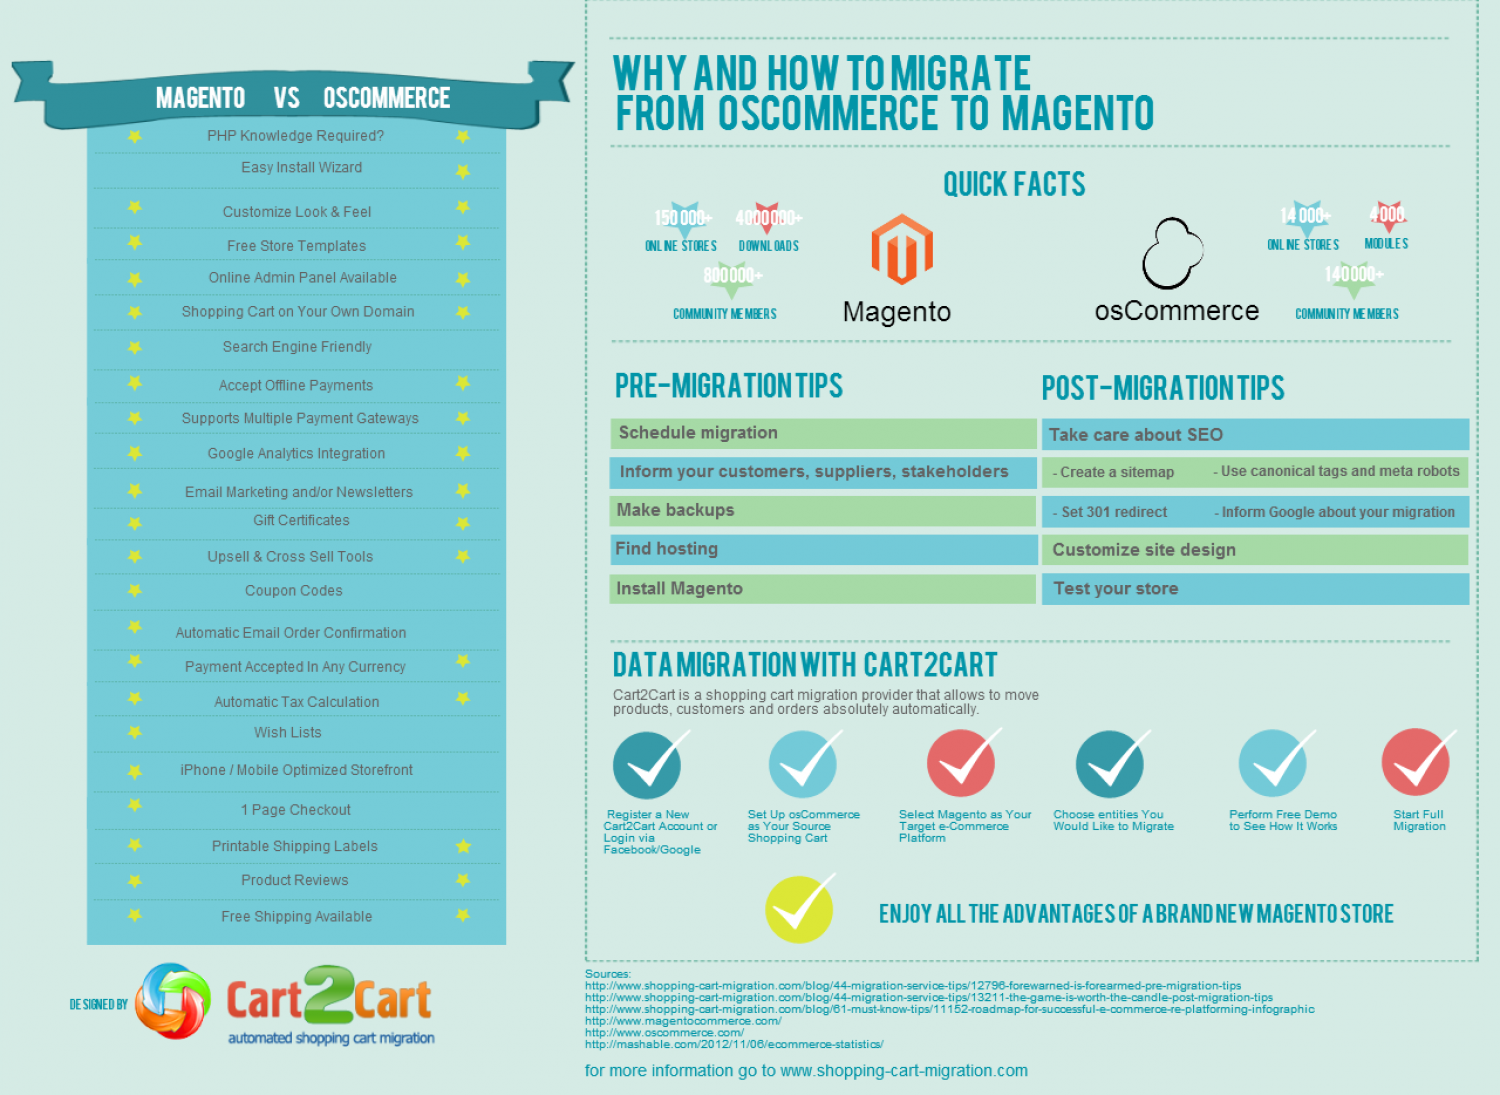 Why and How to Migrate from osCommerce to Magento Infographic